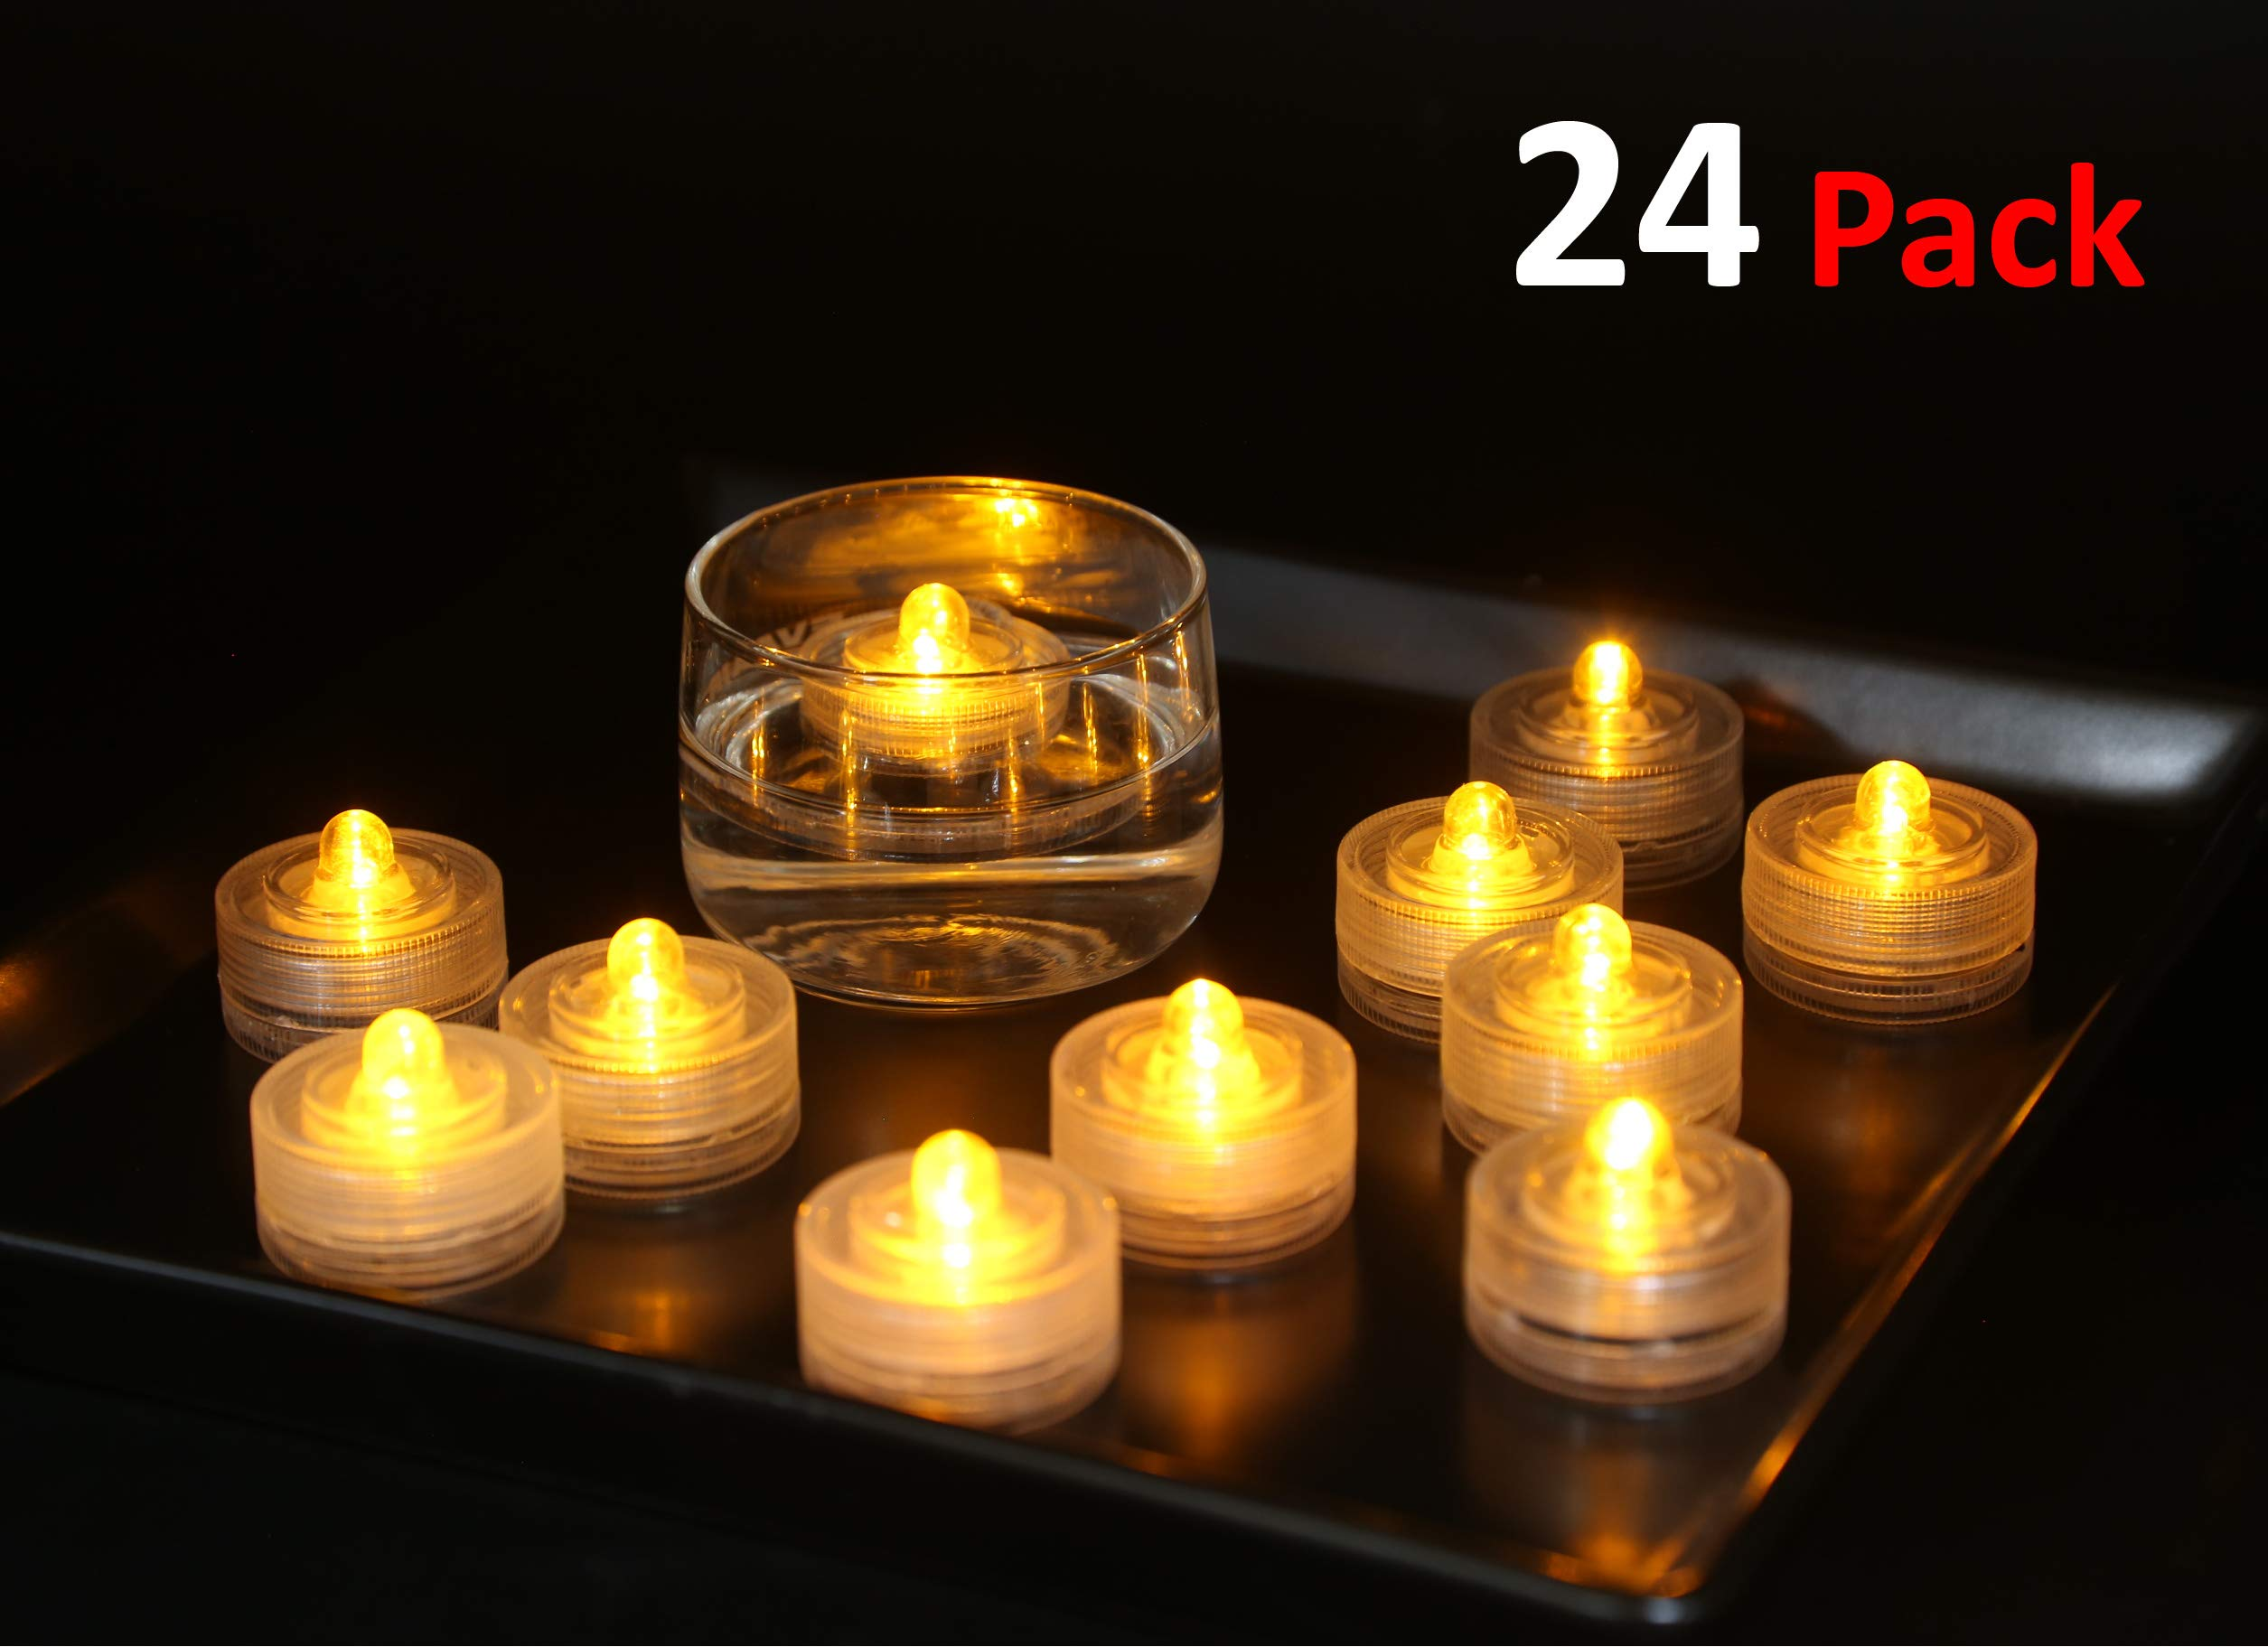 Furora Lighting Flameless Floating Candles Flickering Warm Yellow Led Waterproof Tea Lights Floating Pool Lights Wedding Pool Decorations Candle Floating Candles For Centerpieces Pack Of 24 Buy Online In Bahamas At